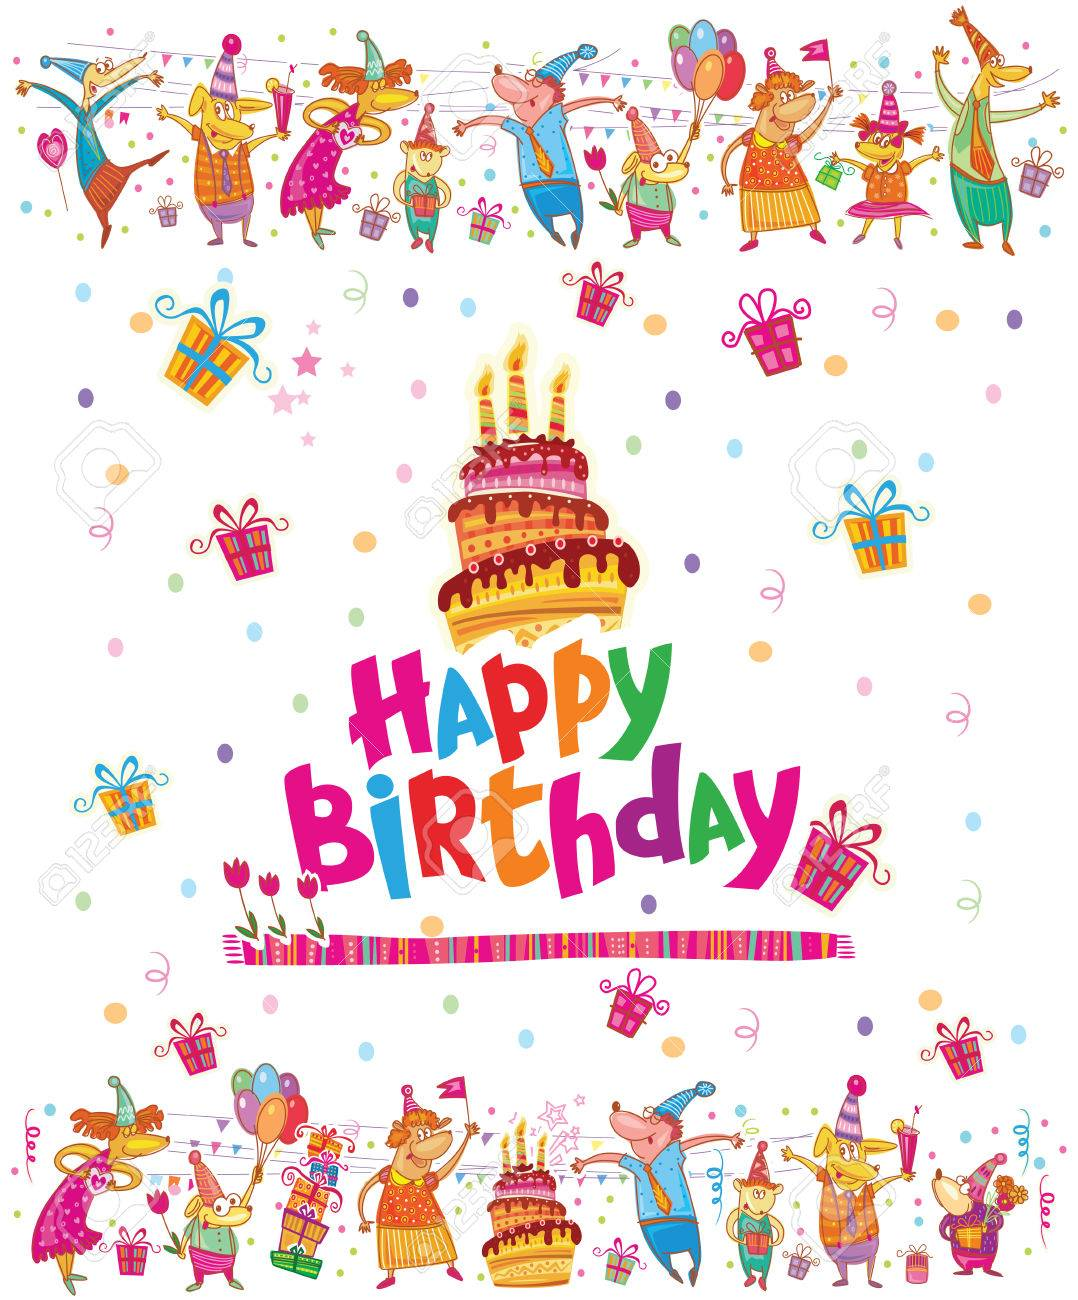 Birthday Card Design With Cake Royalty Free Cliparts Vectors And – Birthday Card Design